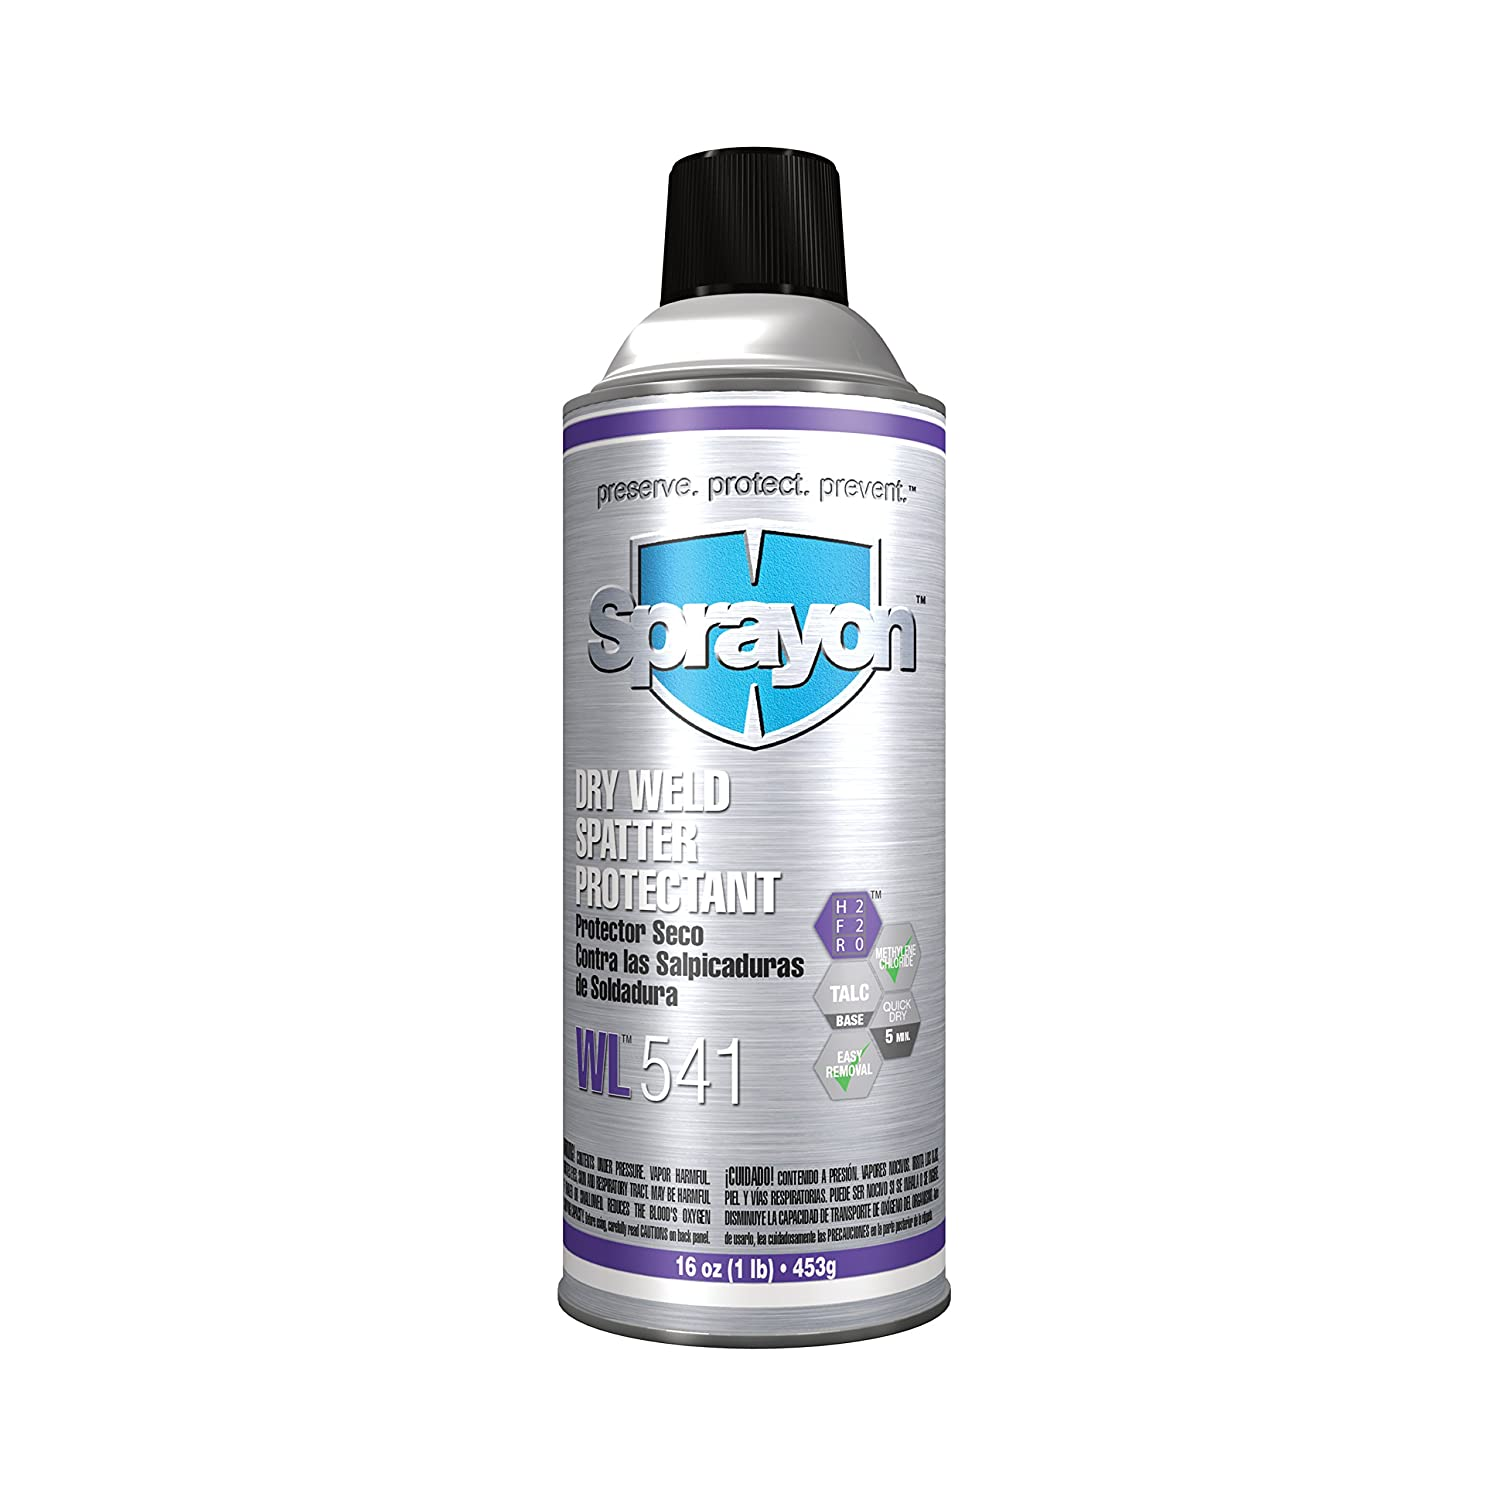 Sprayon S00541000 WL541 Dry Weld Spatter Protectant (with Methylene ...